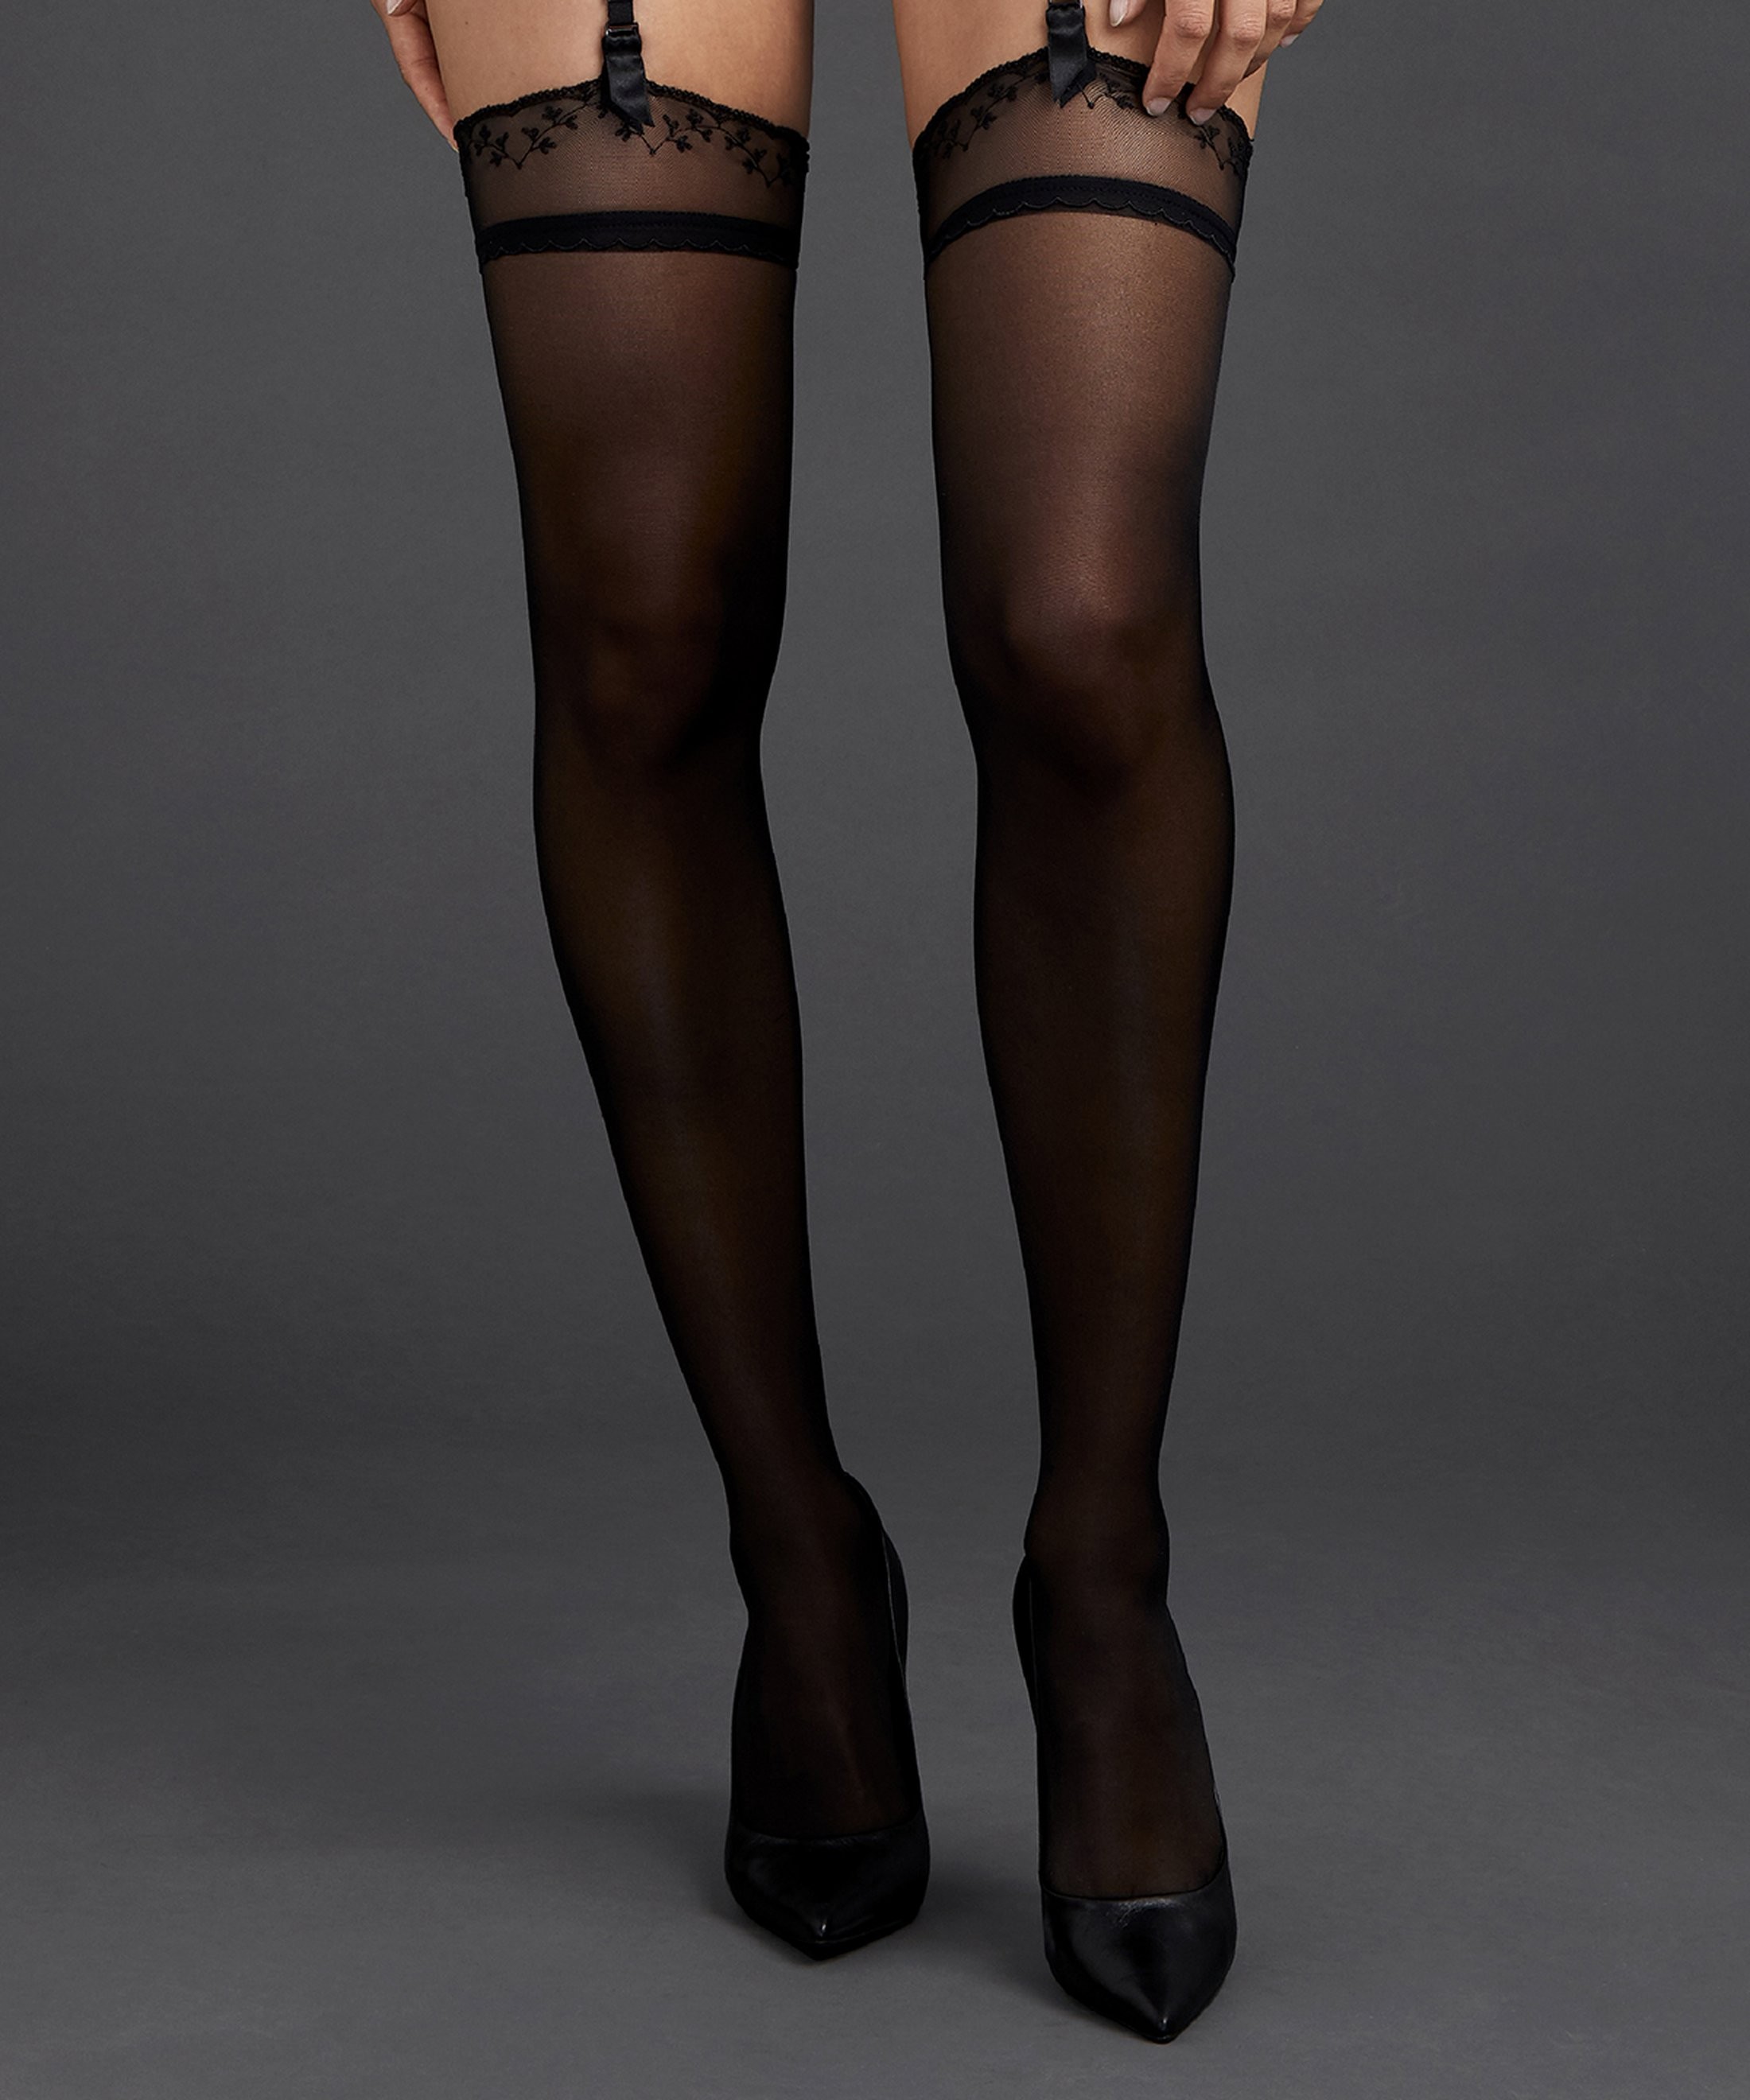 ART OF INK Garter stockings Icone Black | Aubade